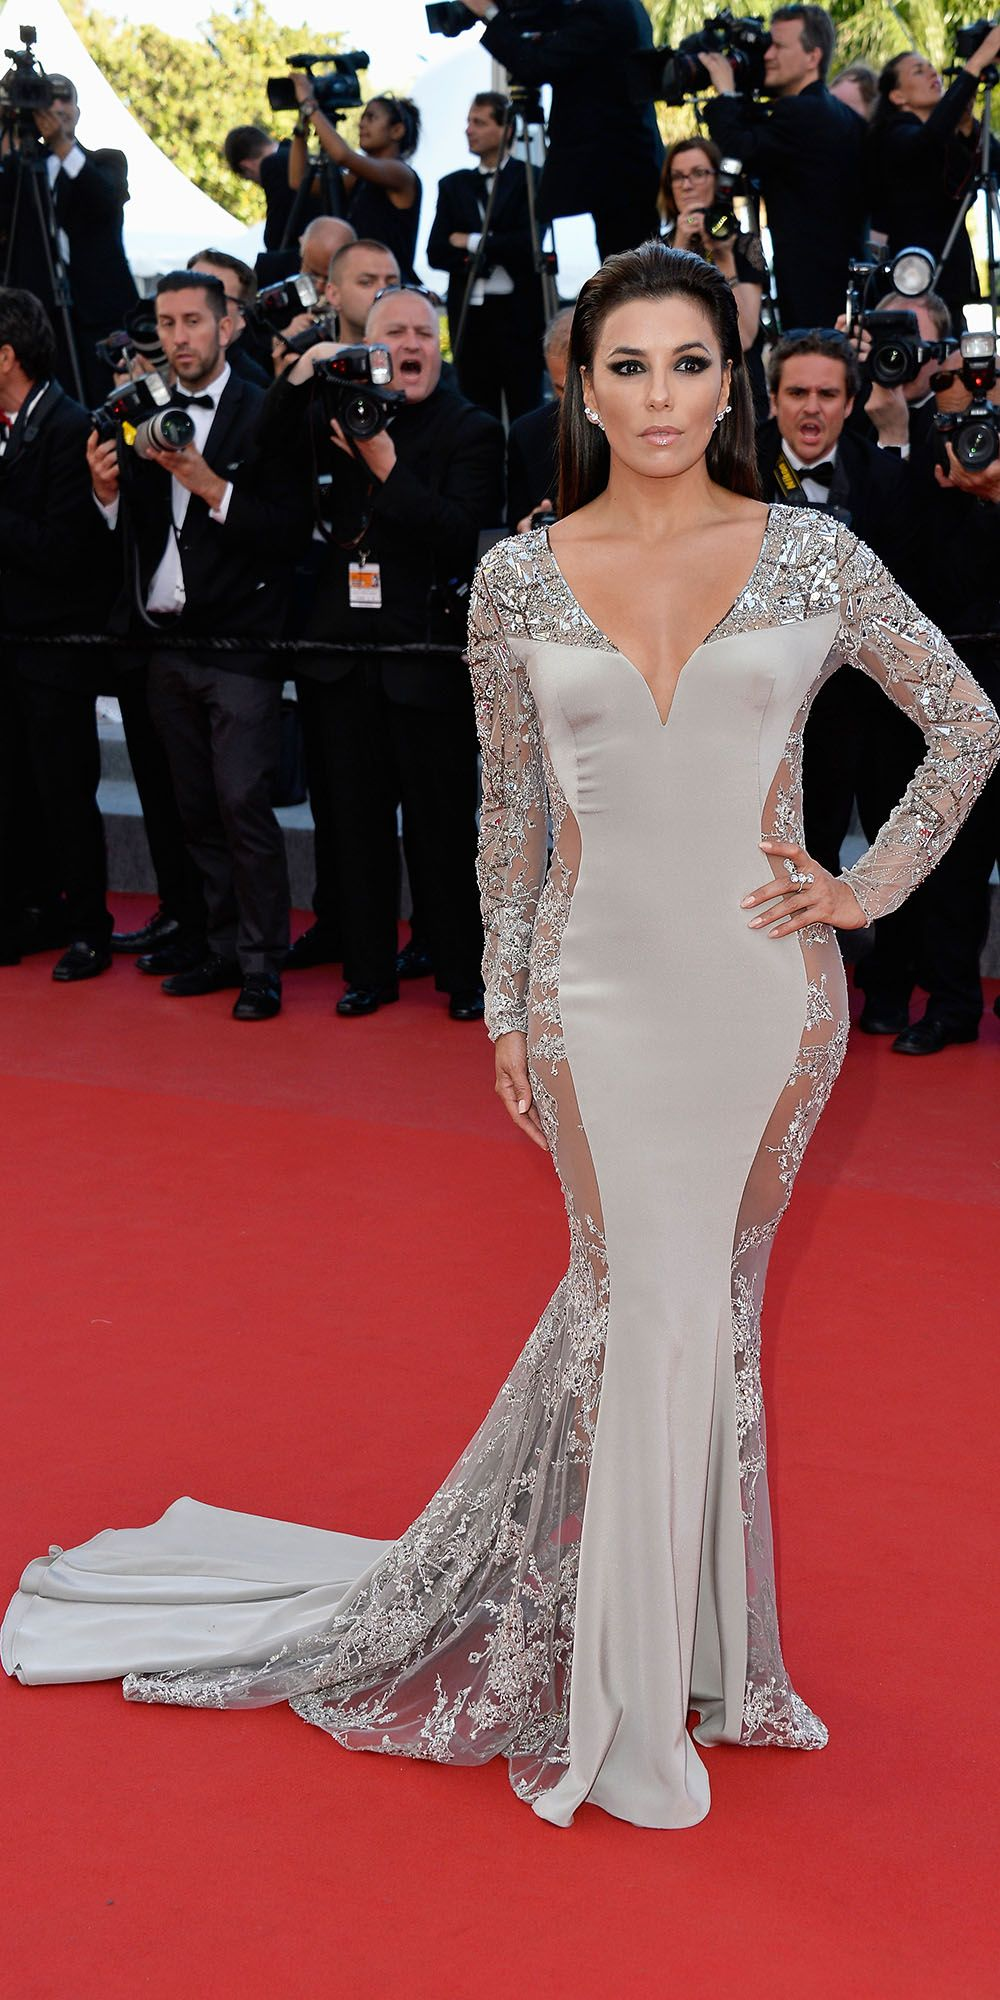 Cannes Film Festival 2015 Best Red Carpet Red Carpet Dresses Cannes Film Festival 2015 Glam Dresses